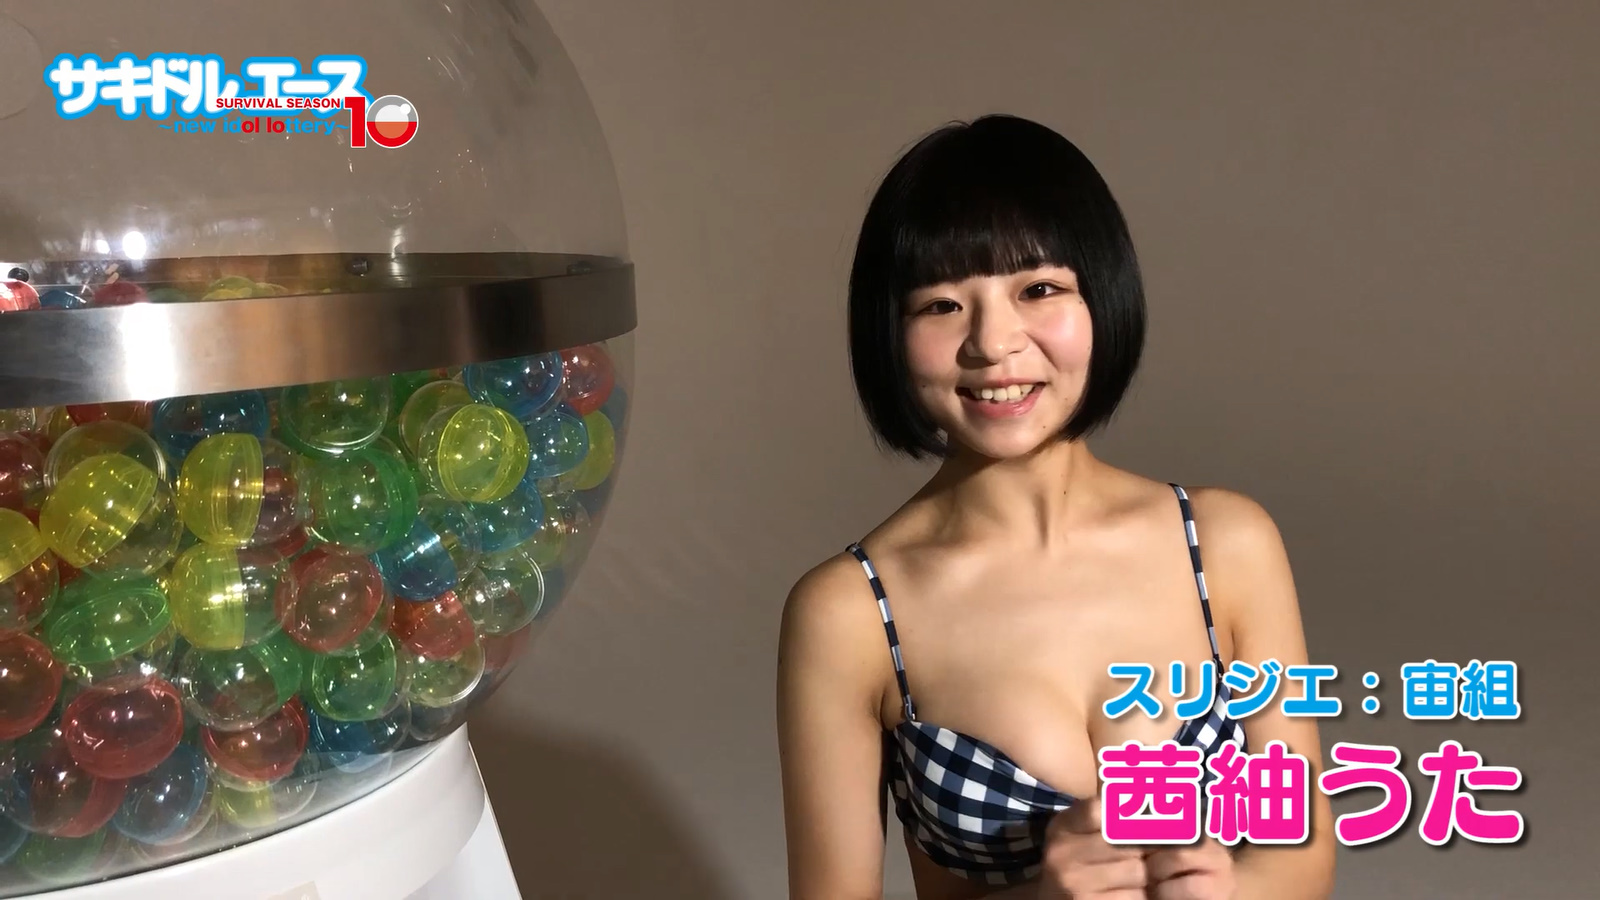 Sakidol Ace 10 Introduction Movie Capture of Swimsuit064